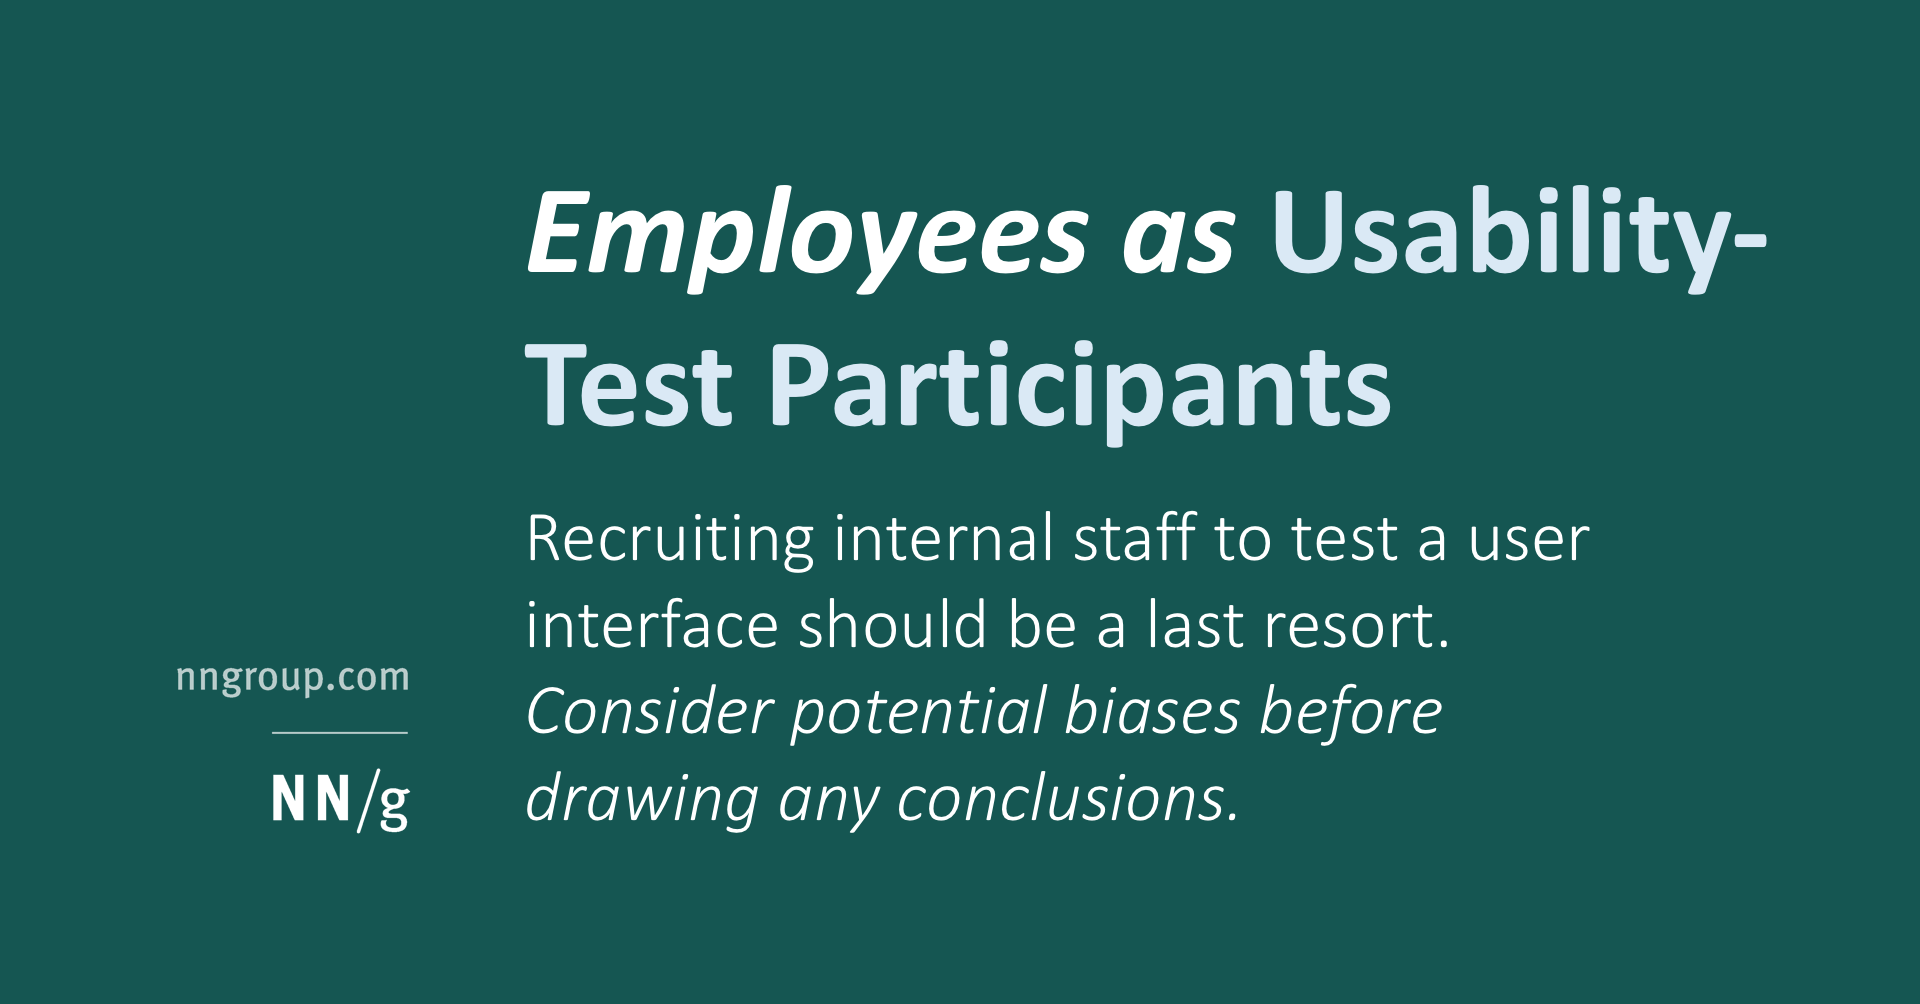 Employees As Usability Test Participants